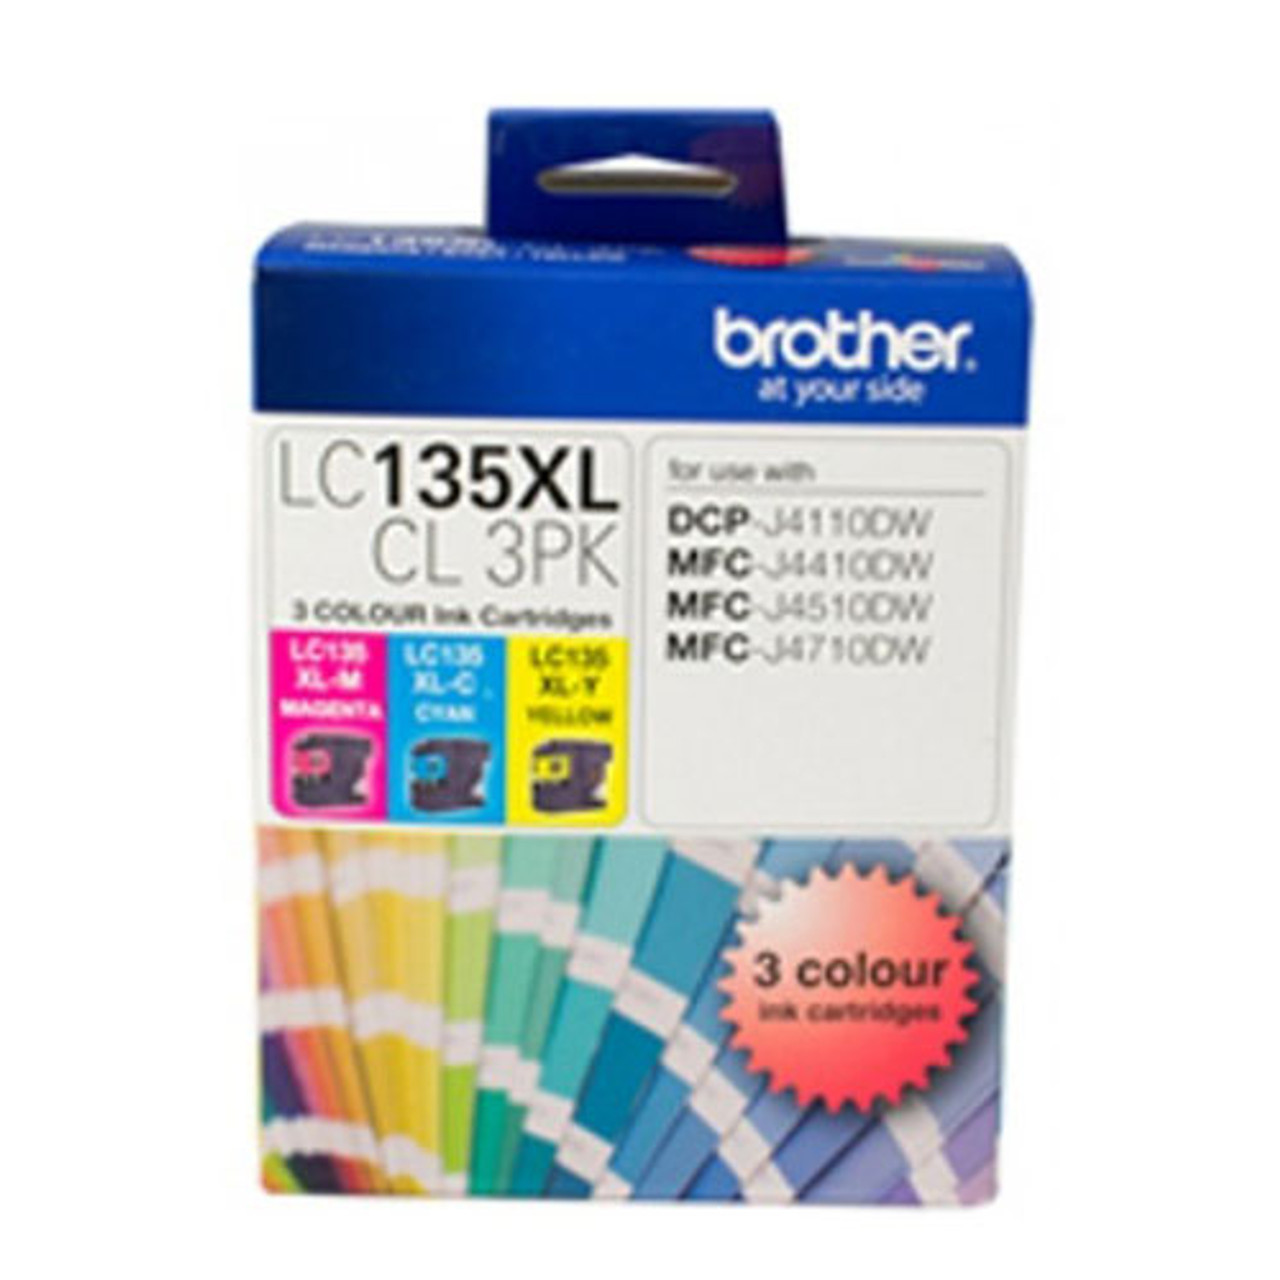 Image for Brother LC135XL CMY Colour Pk up to 1200 pages per colour Misc Consumables CX Computer Superstore